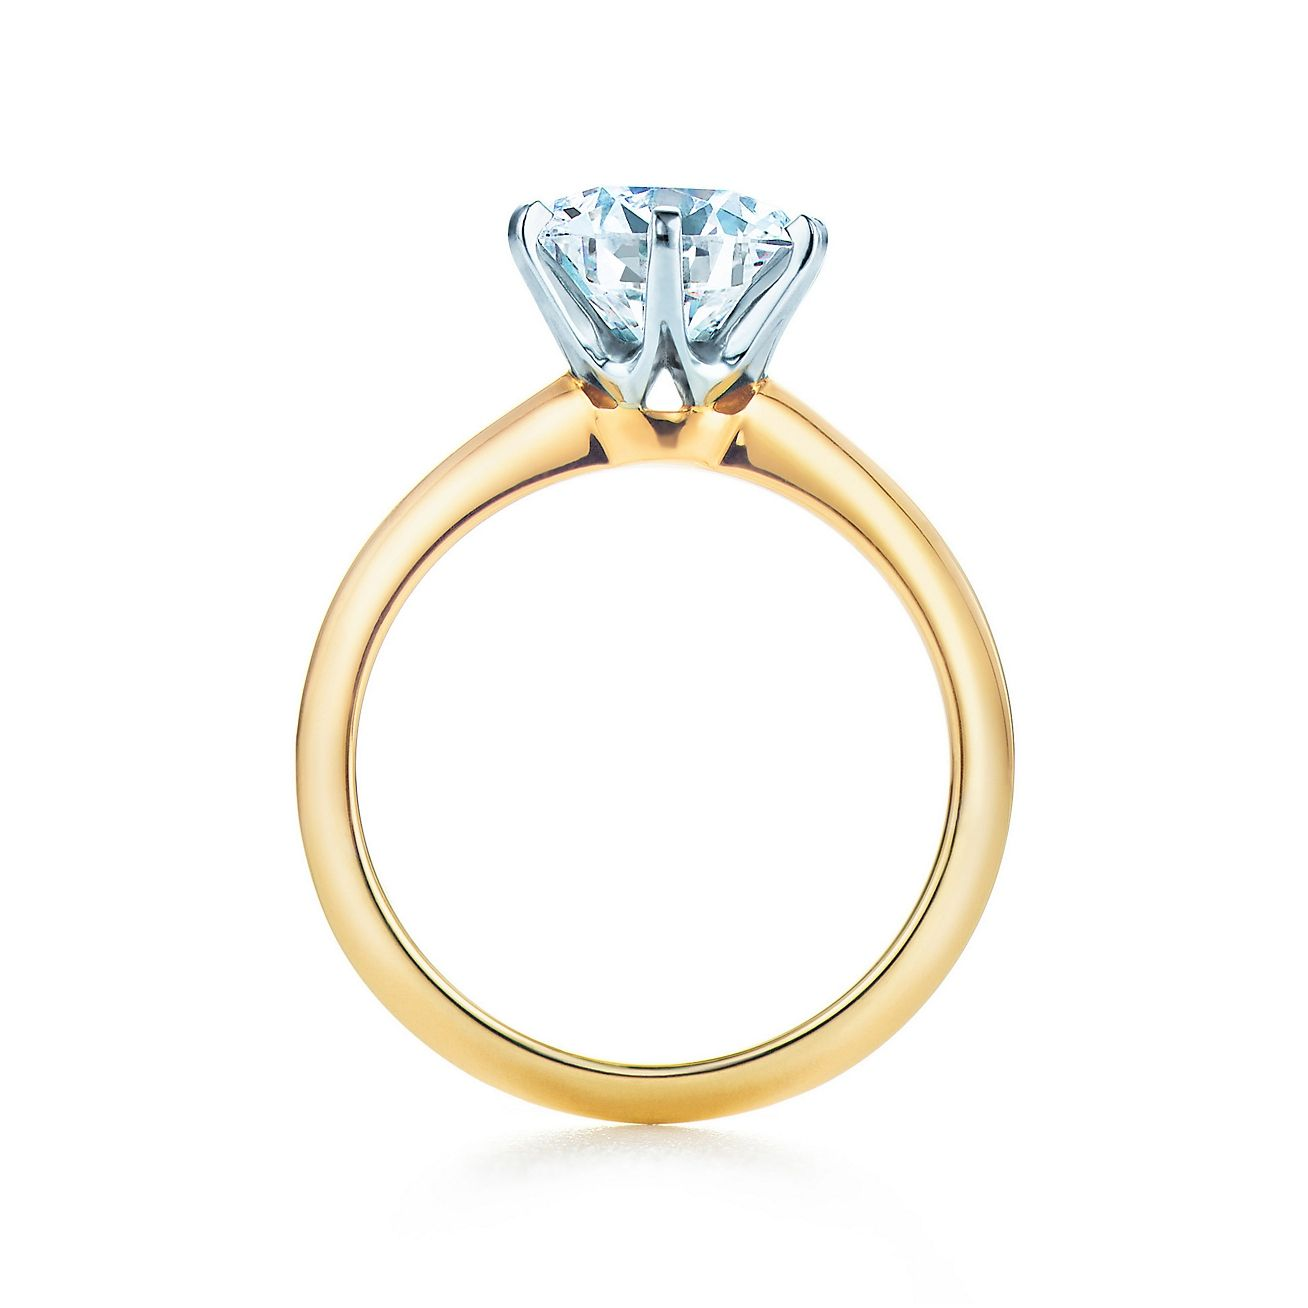 The Tiffany® Setting 18K Yellow Gold | Tiffany and Engagements